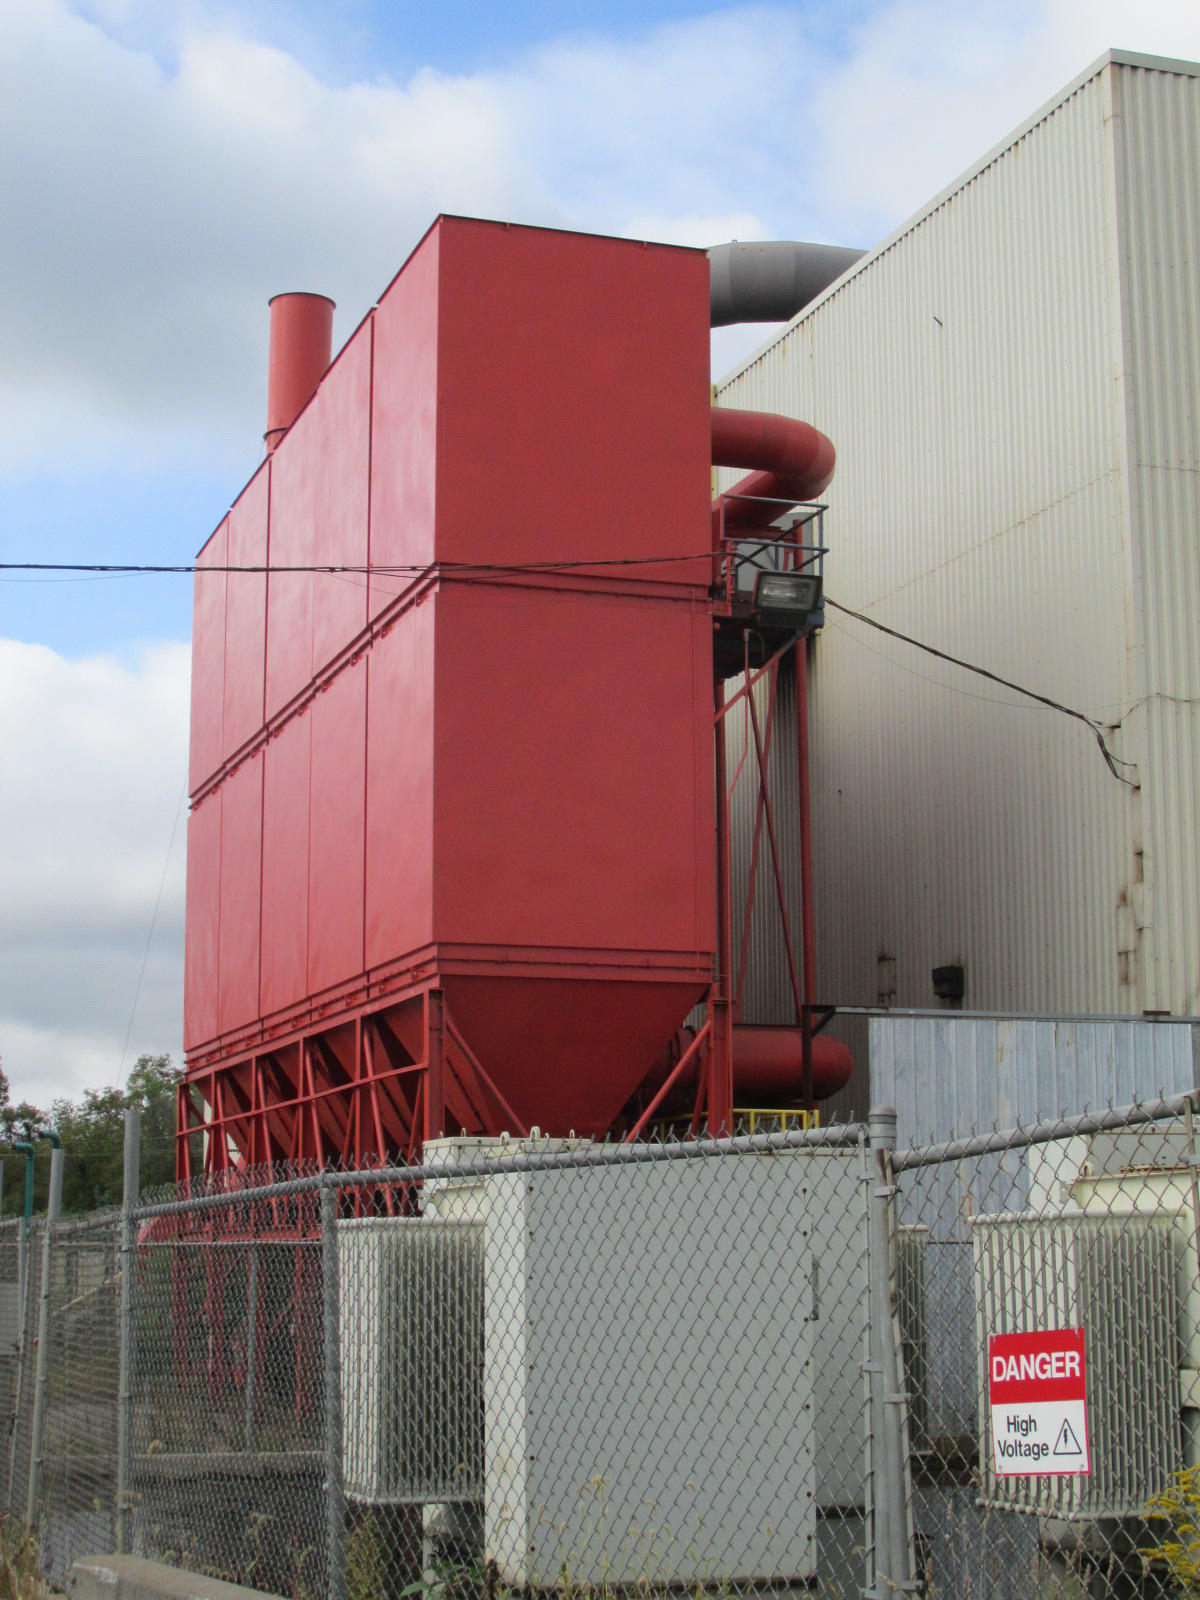 56,000 cfm Mikro-Pul #180-12-20 TRH 5-Module Baghouse Dust Collector